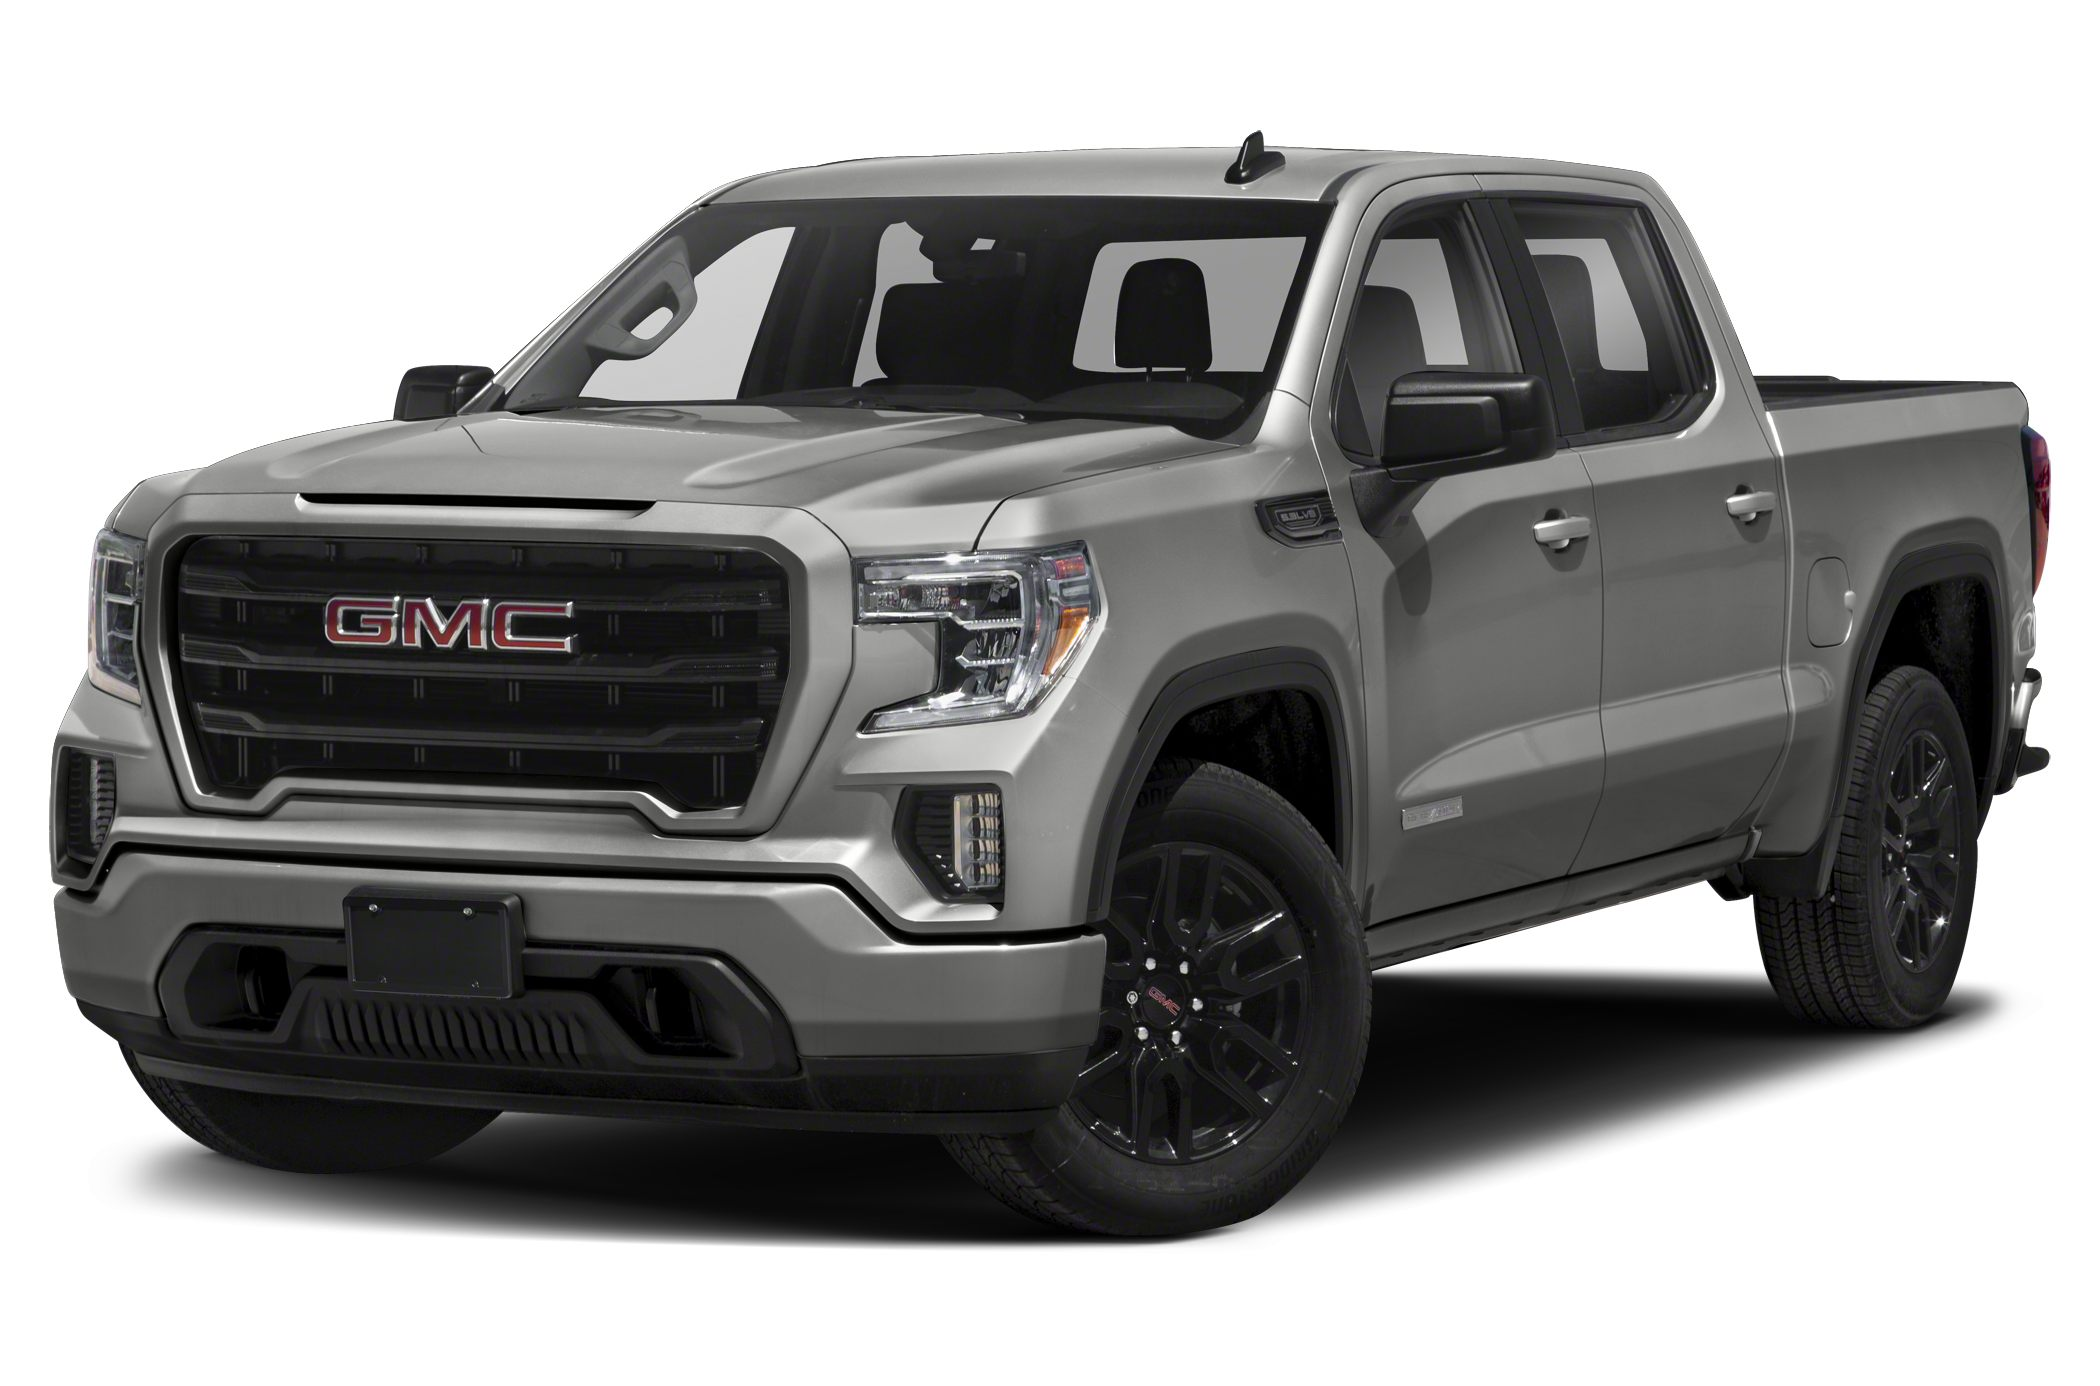 2020 Gmc Sierra 1500 Elevation 4x4 Crew Cab 6 6 Ft Box 157 In Wb Specs And Prices